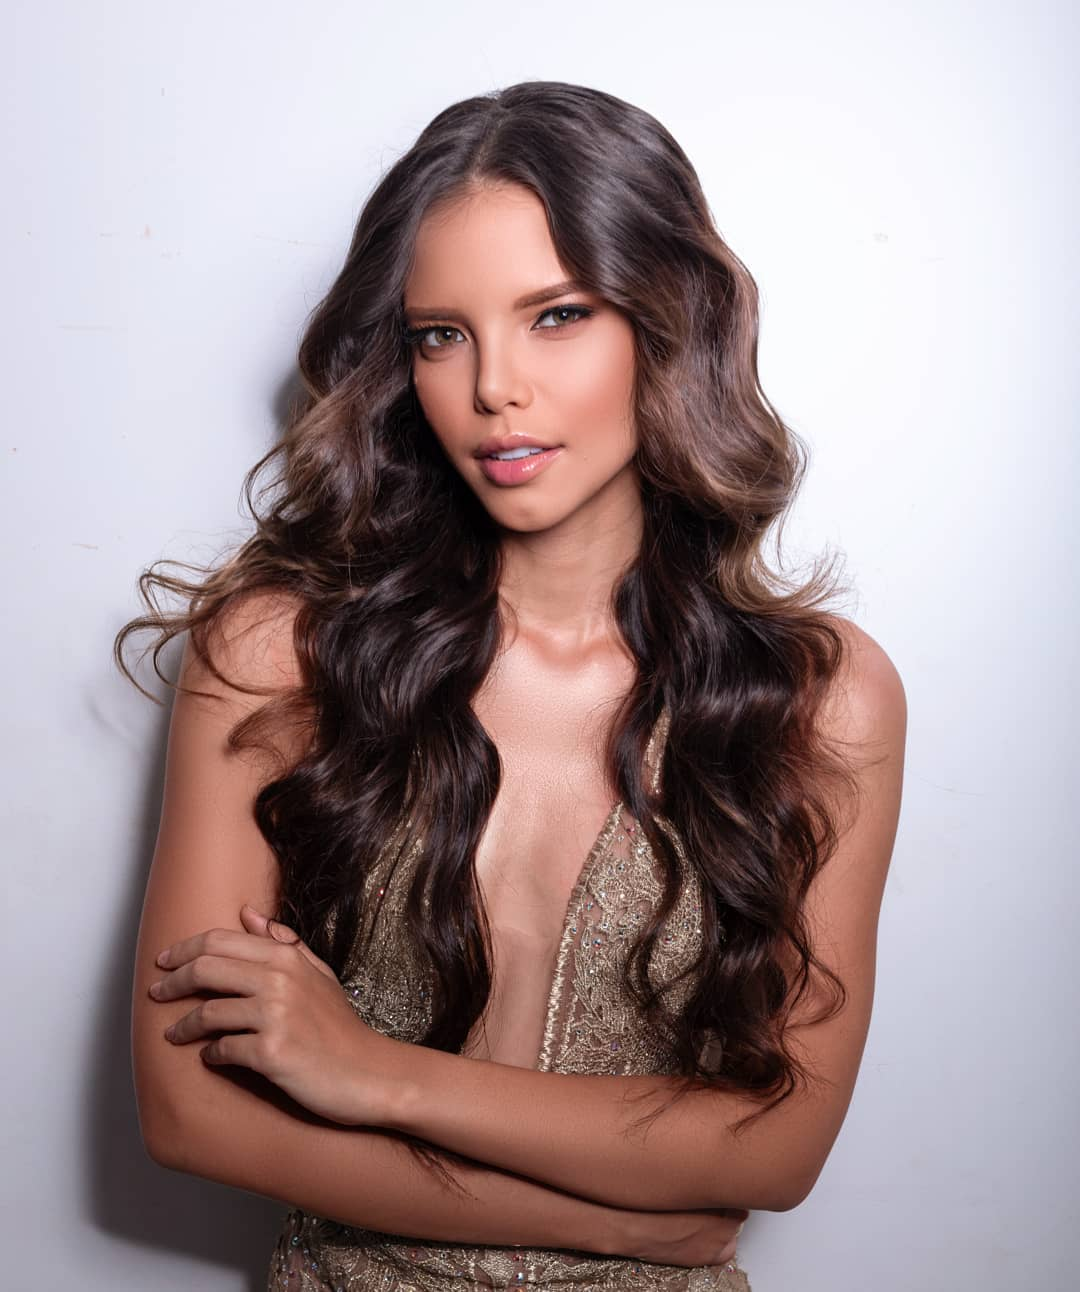 yaiselle tous, miss supranational colombia 2019. - Página 2 73425411